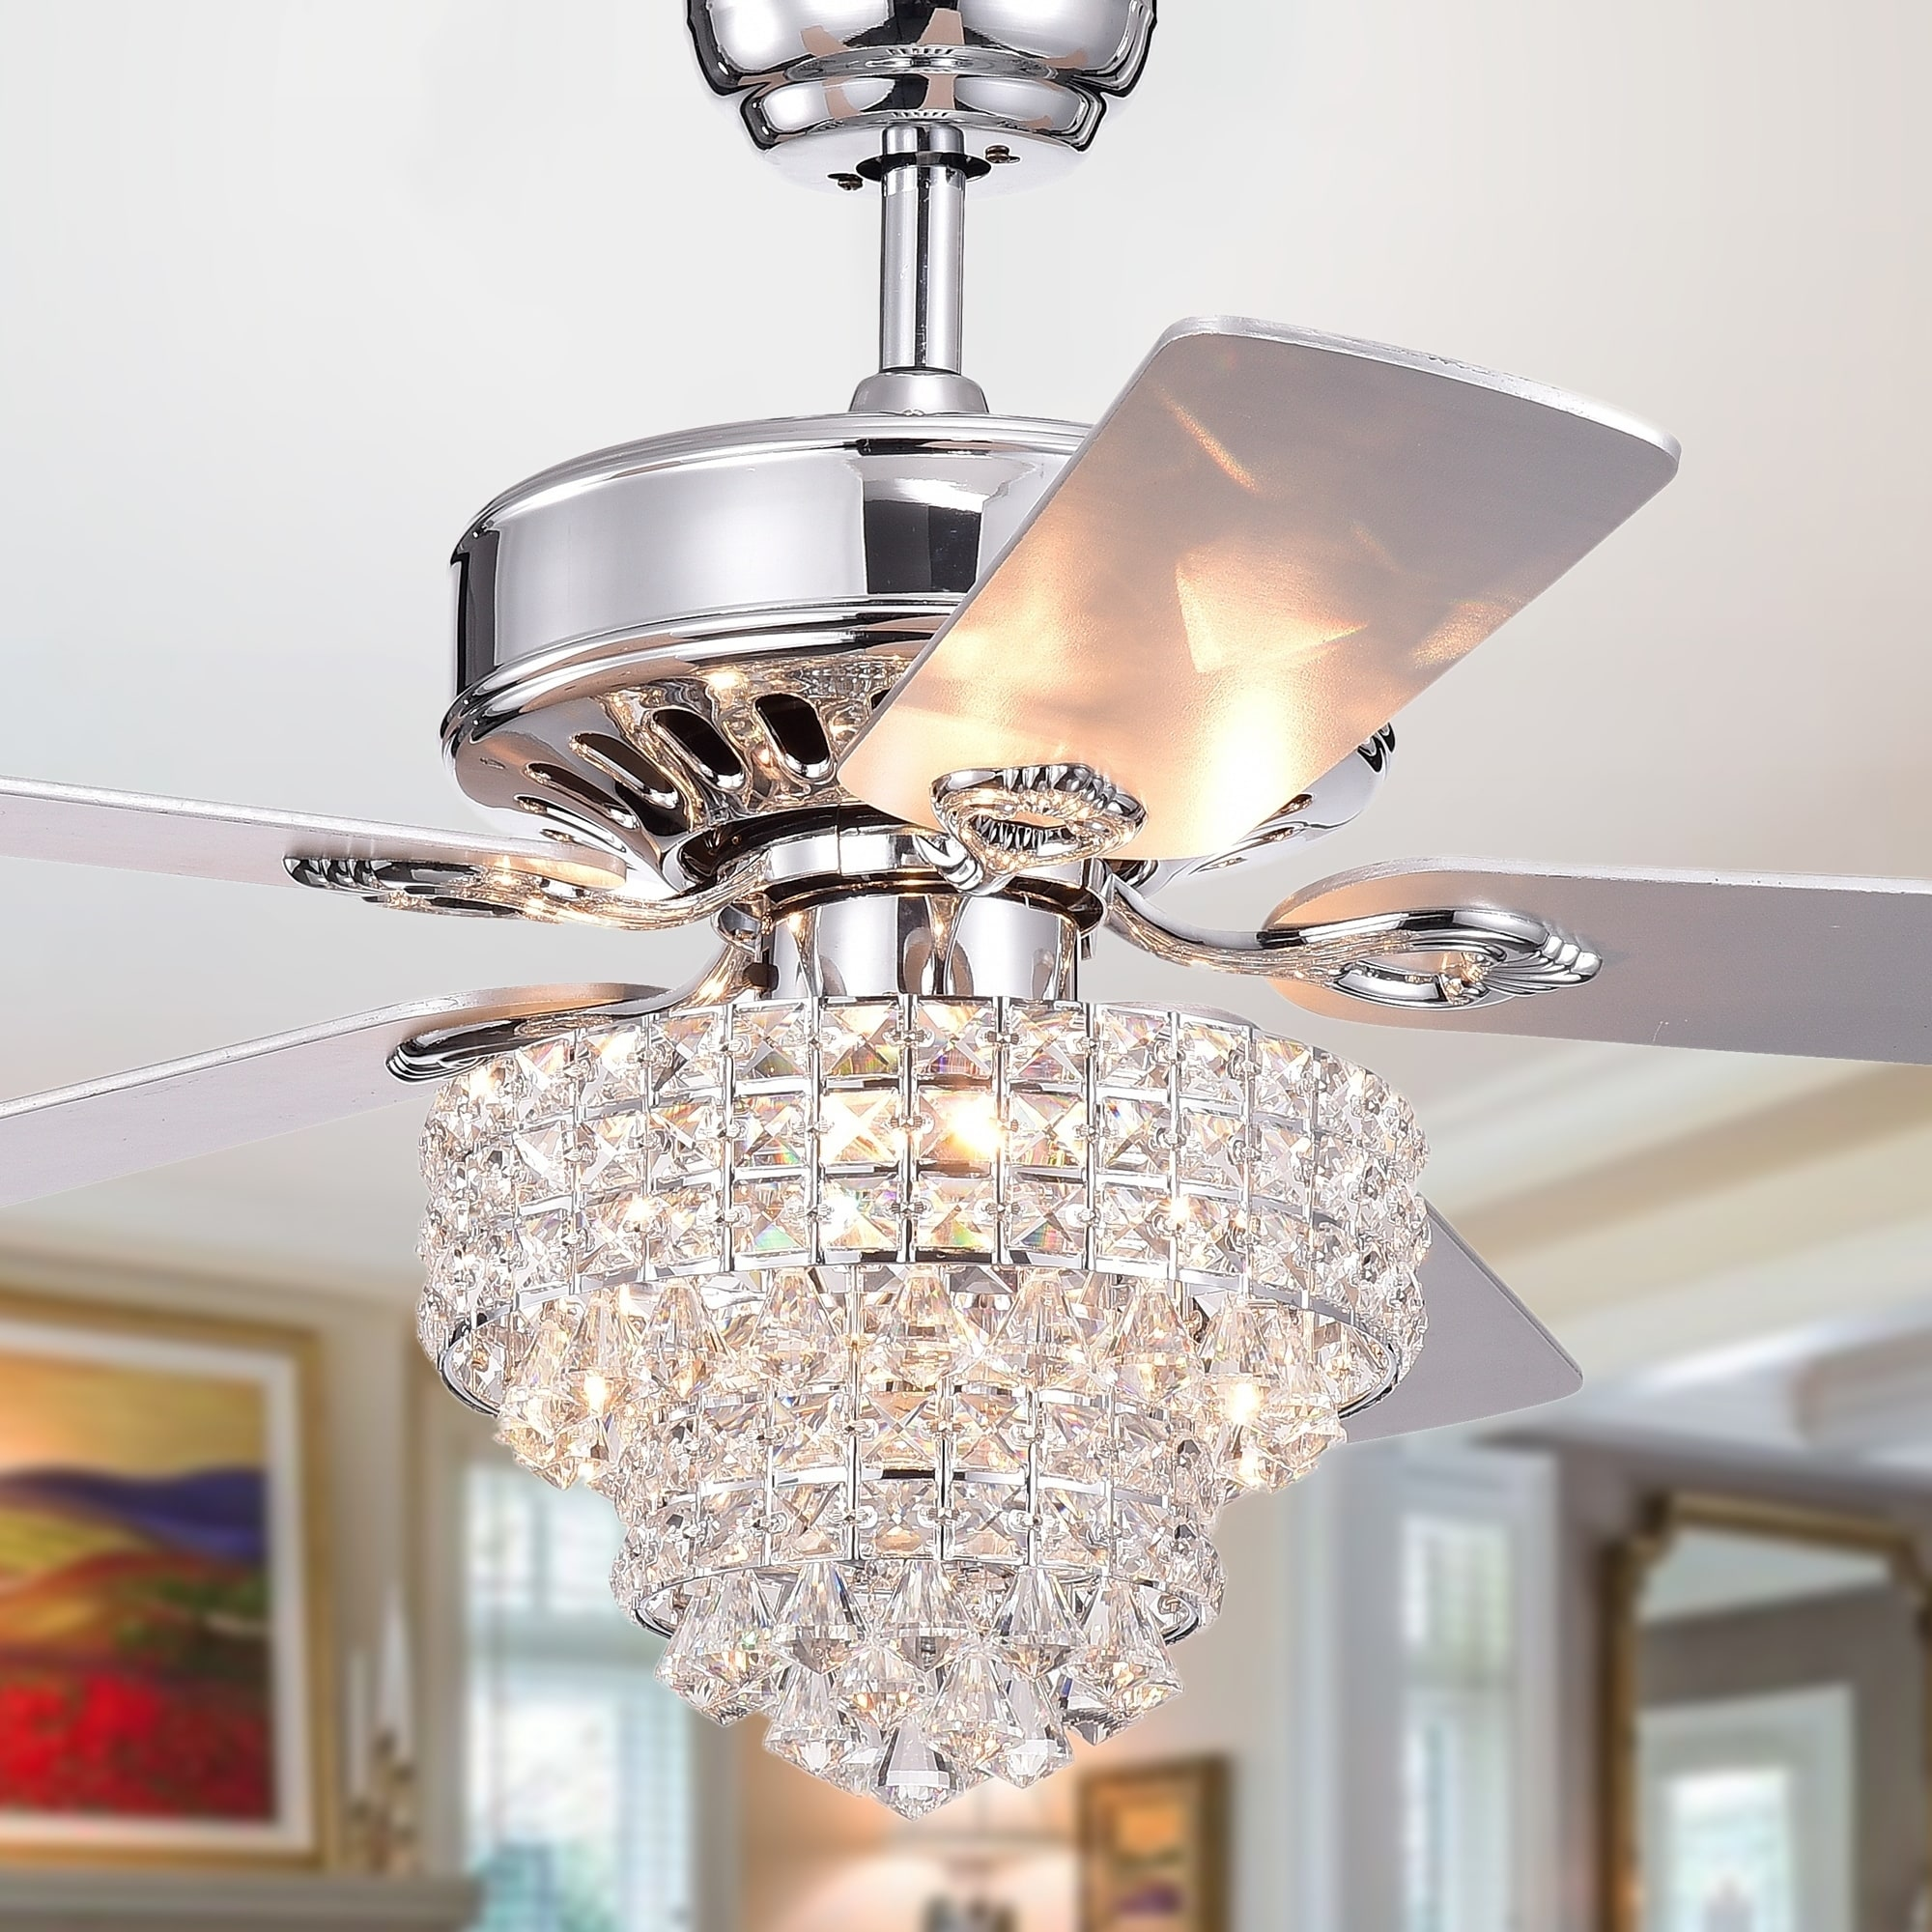 Ceiling Fan Size For Garage Buy Ceiling Fans Online At Overstock Our Best Lighting Deals